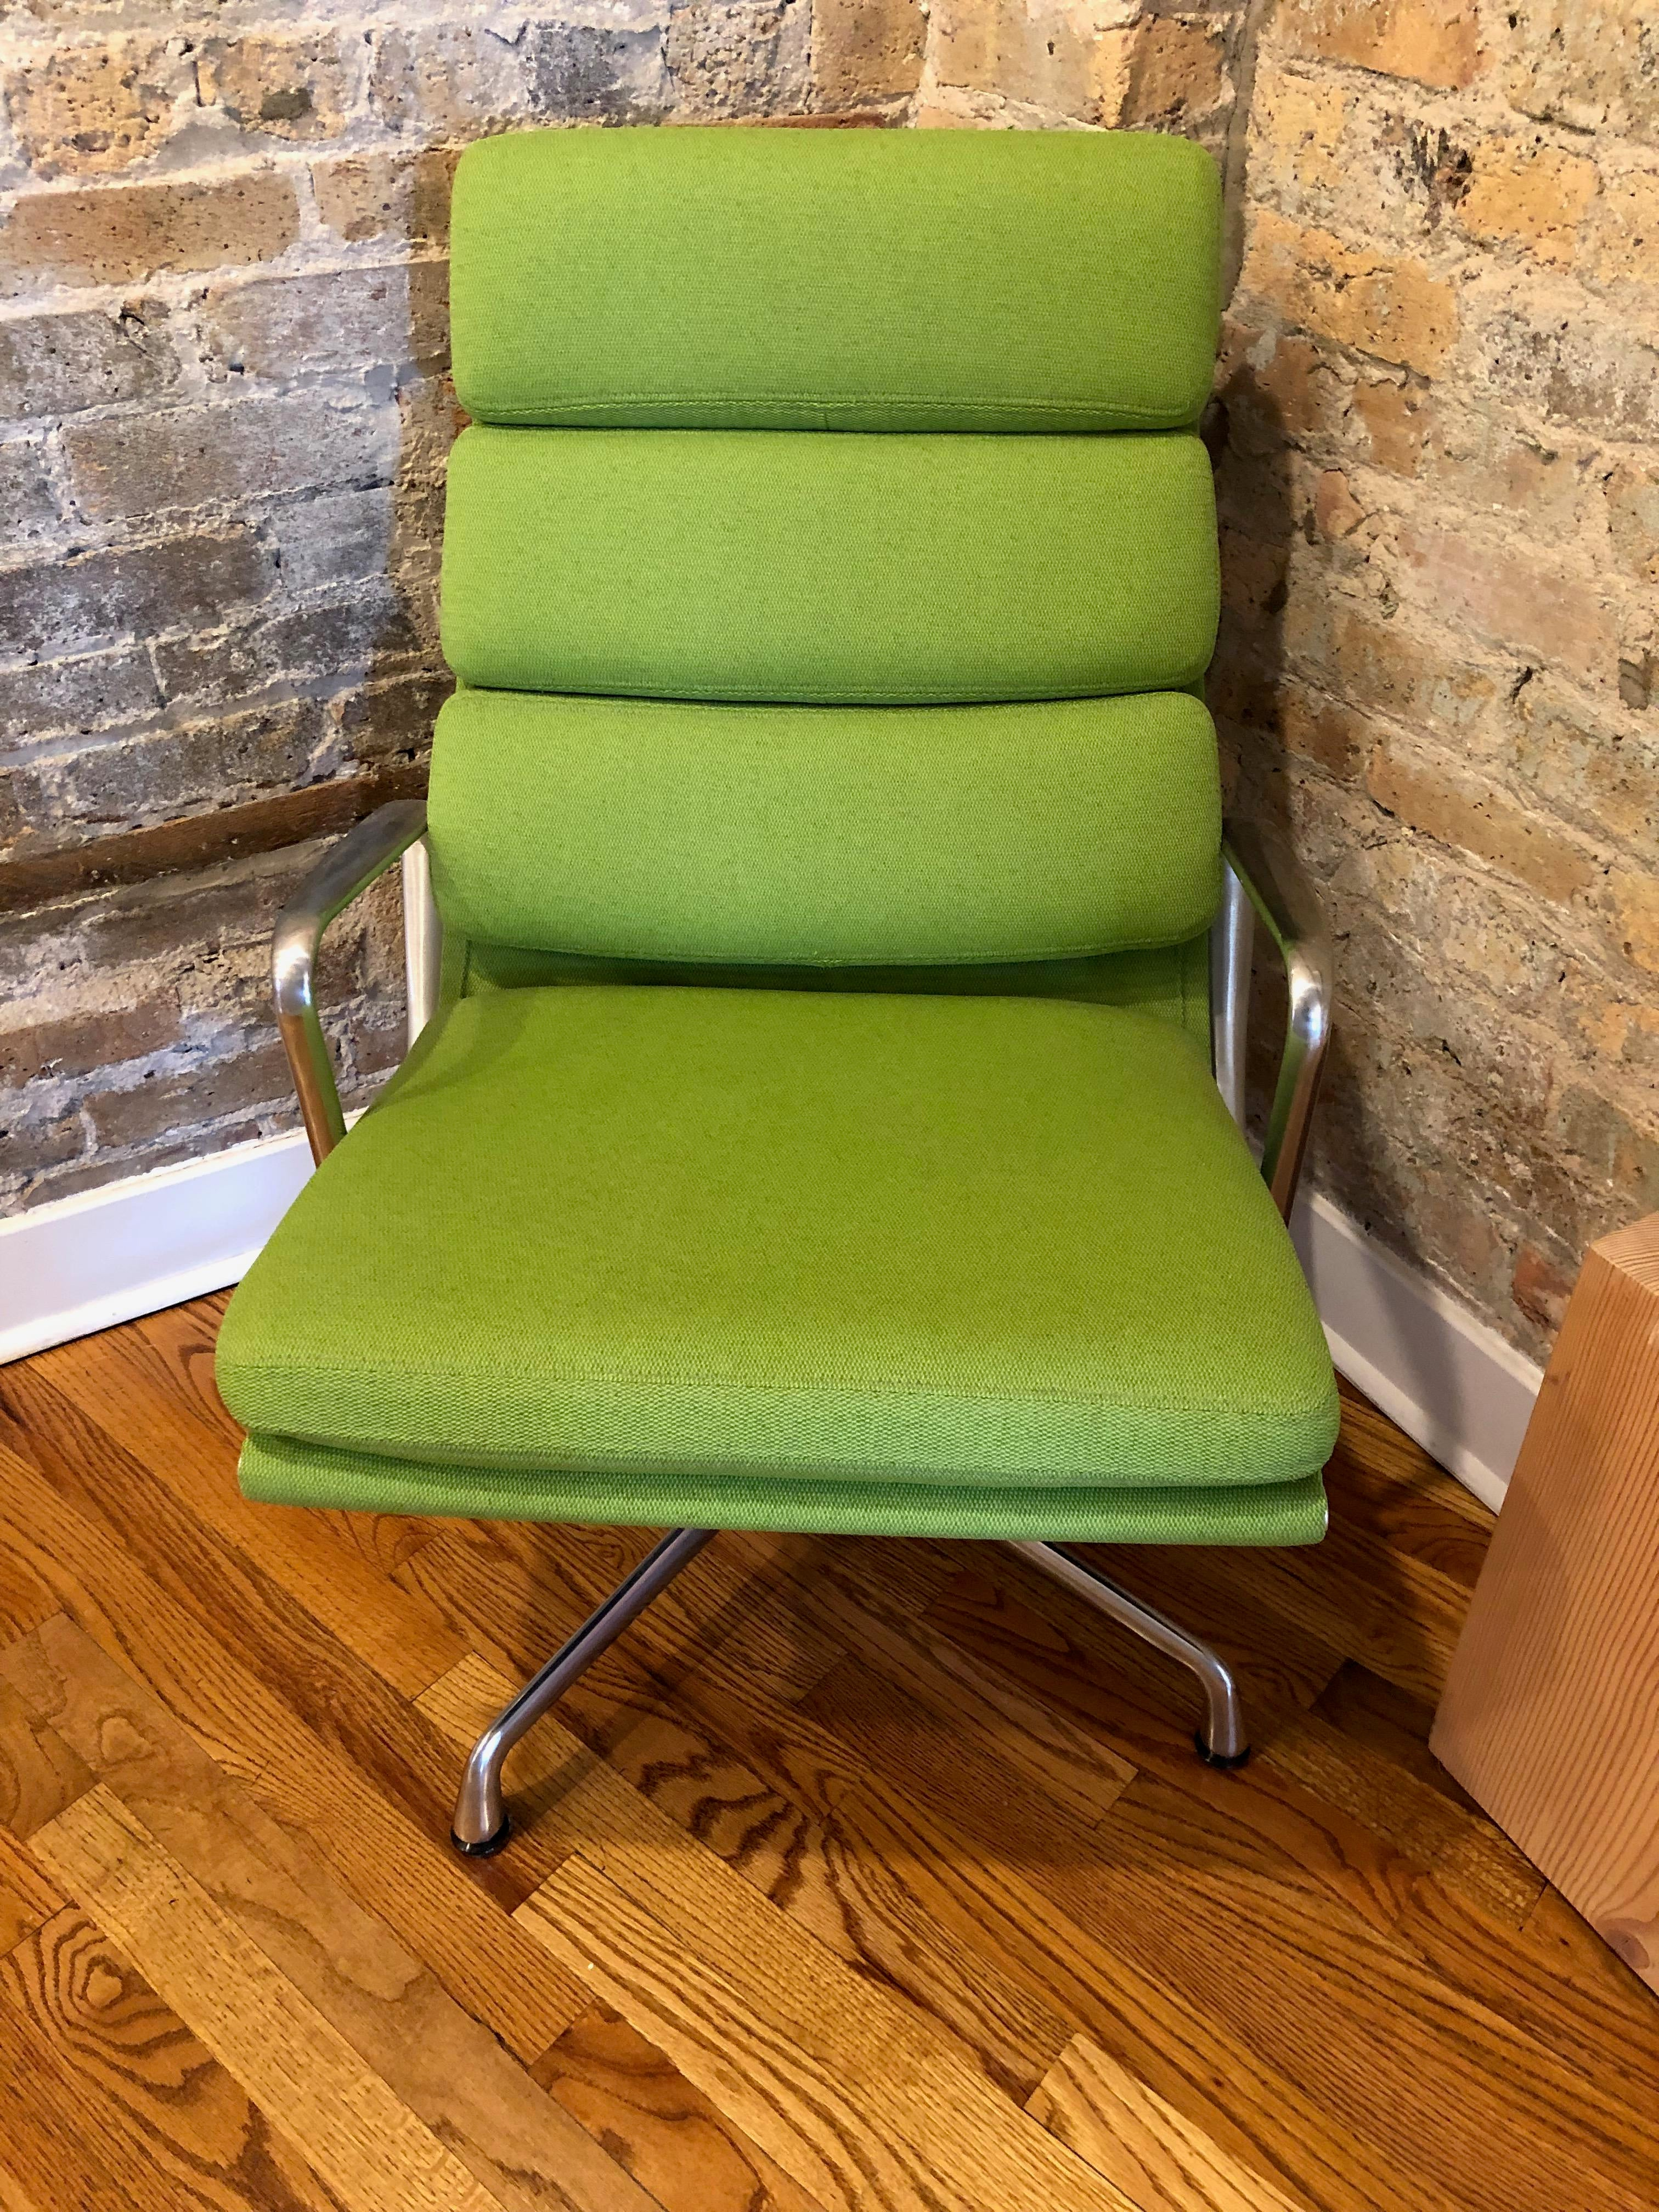 Beautiful Neon (green) Colored Eames Chairs And Ottoman Set In Great  Condition. These. Mid Century Modern Herman Miller ...